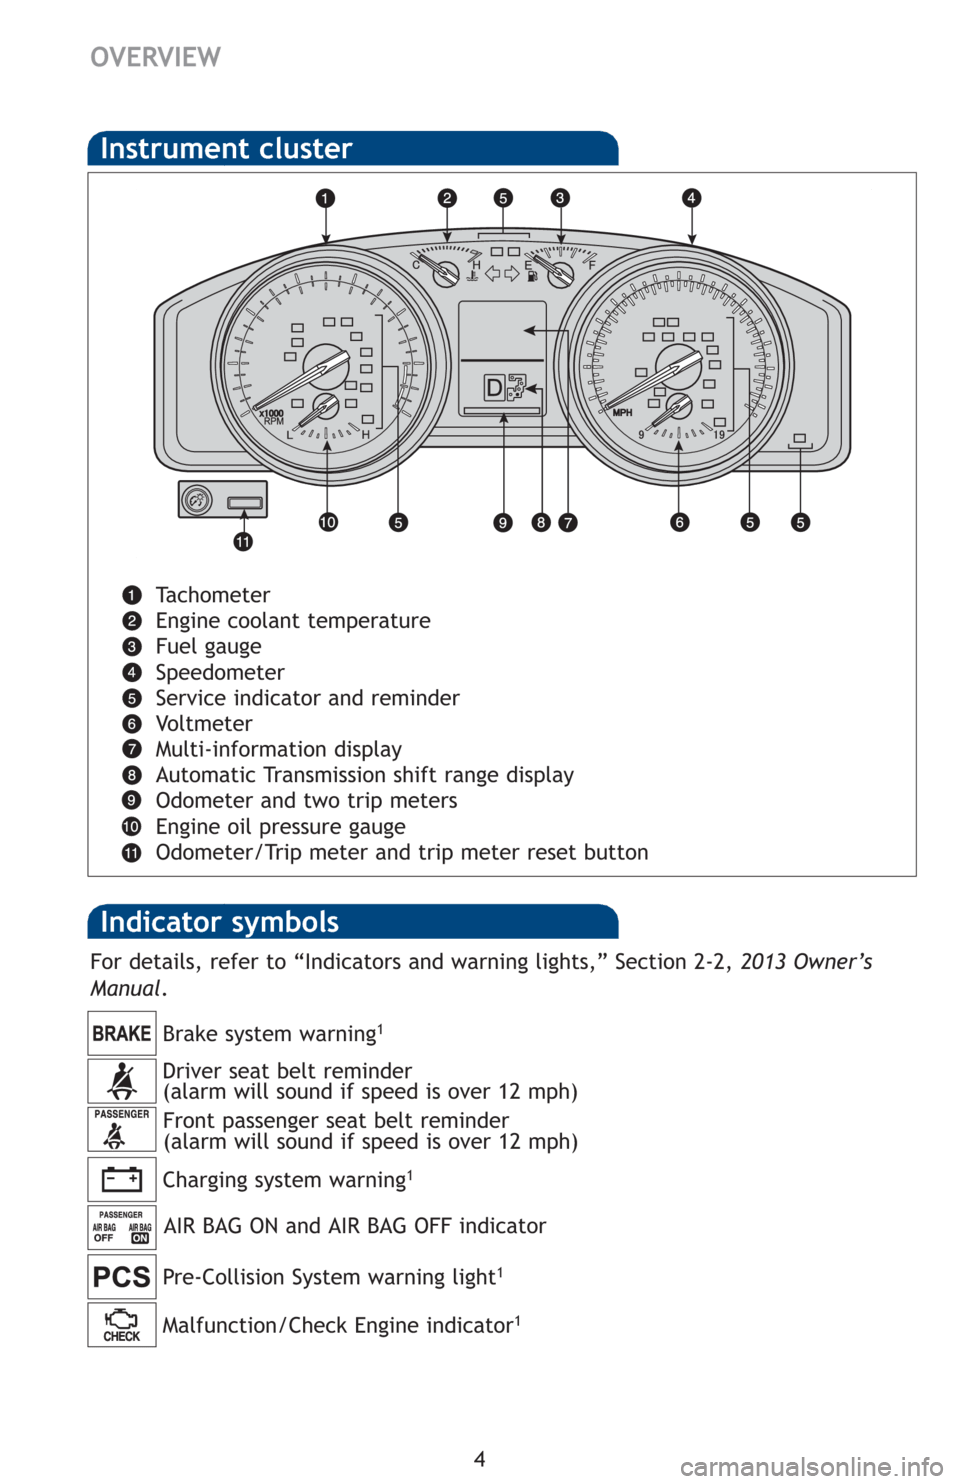 TOYOTA LAND CRUISER 2013 J200 Quick Reference Guide (36 Pages)